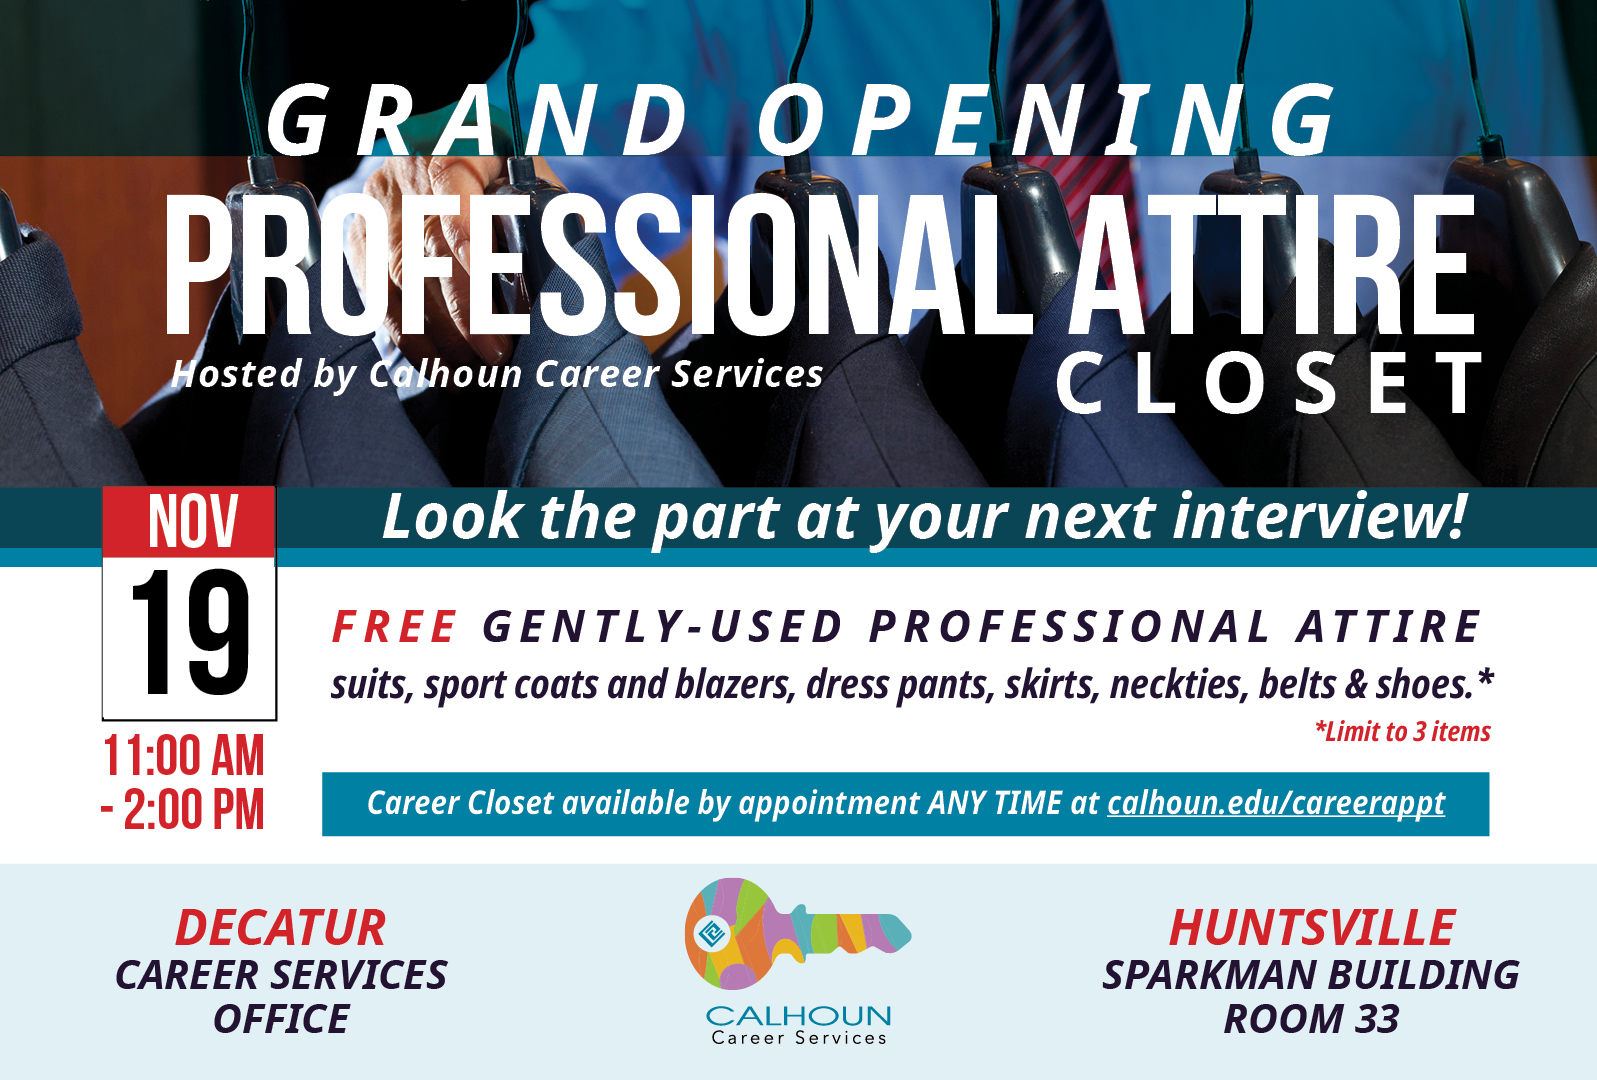 Professional attire clost graphic